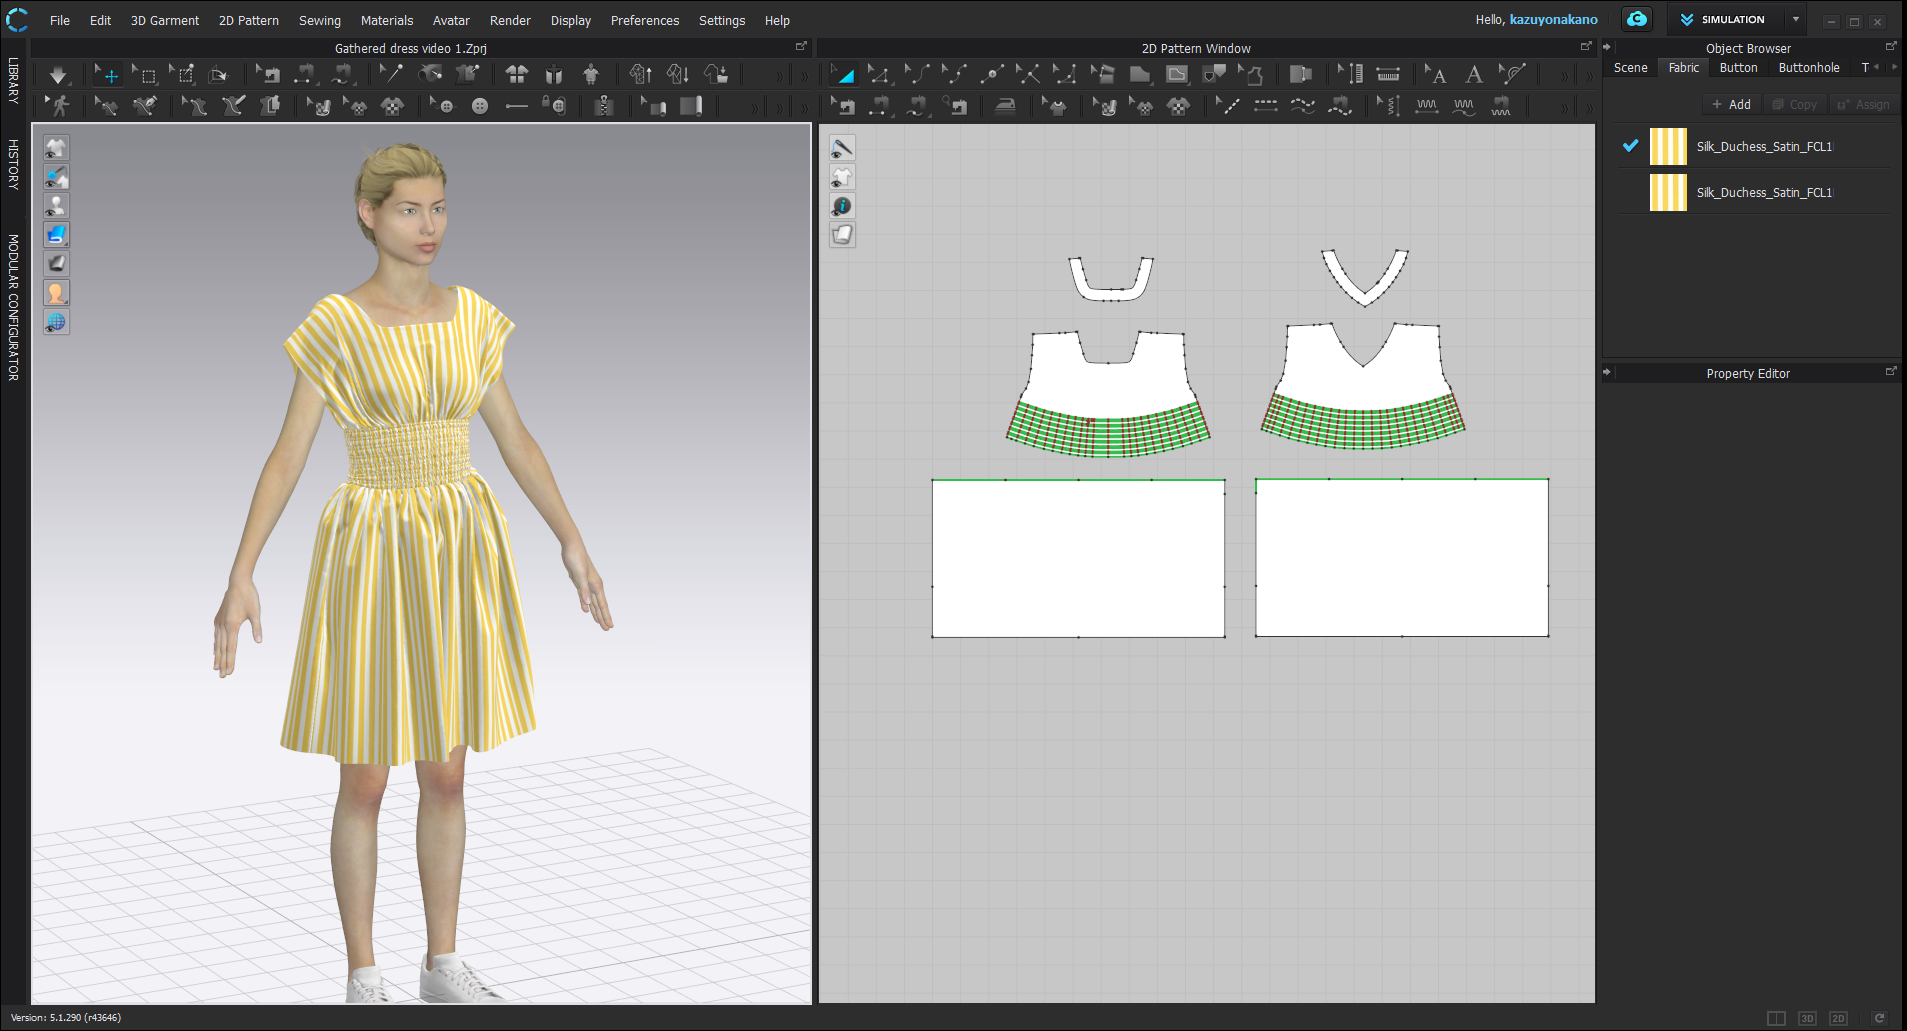 Mocking yellow stripe dress